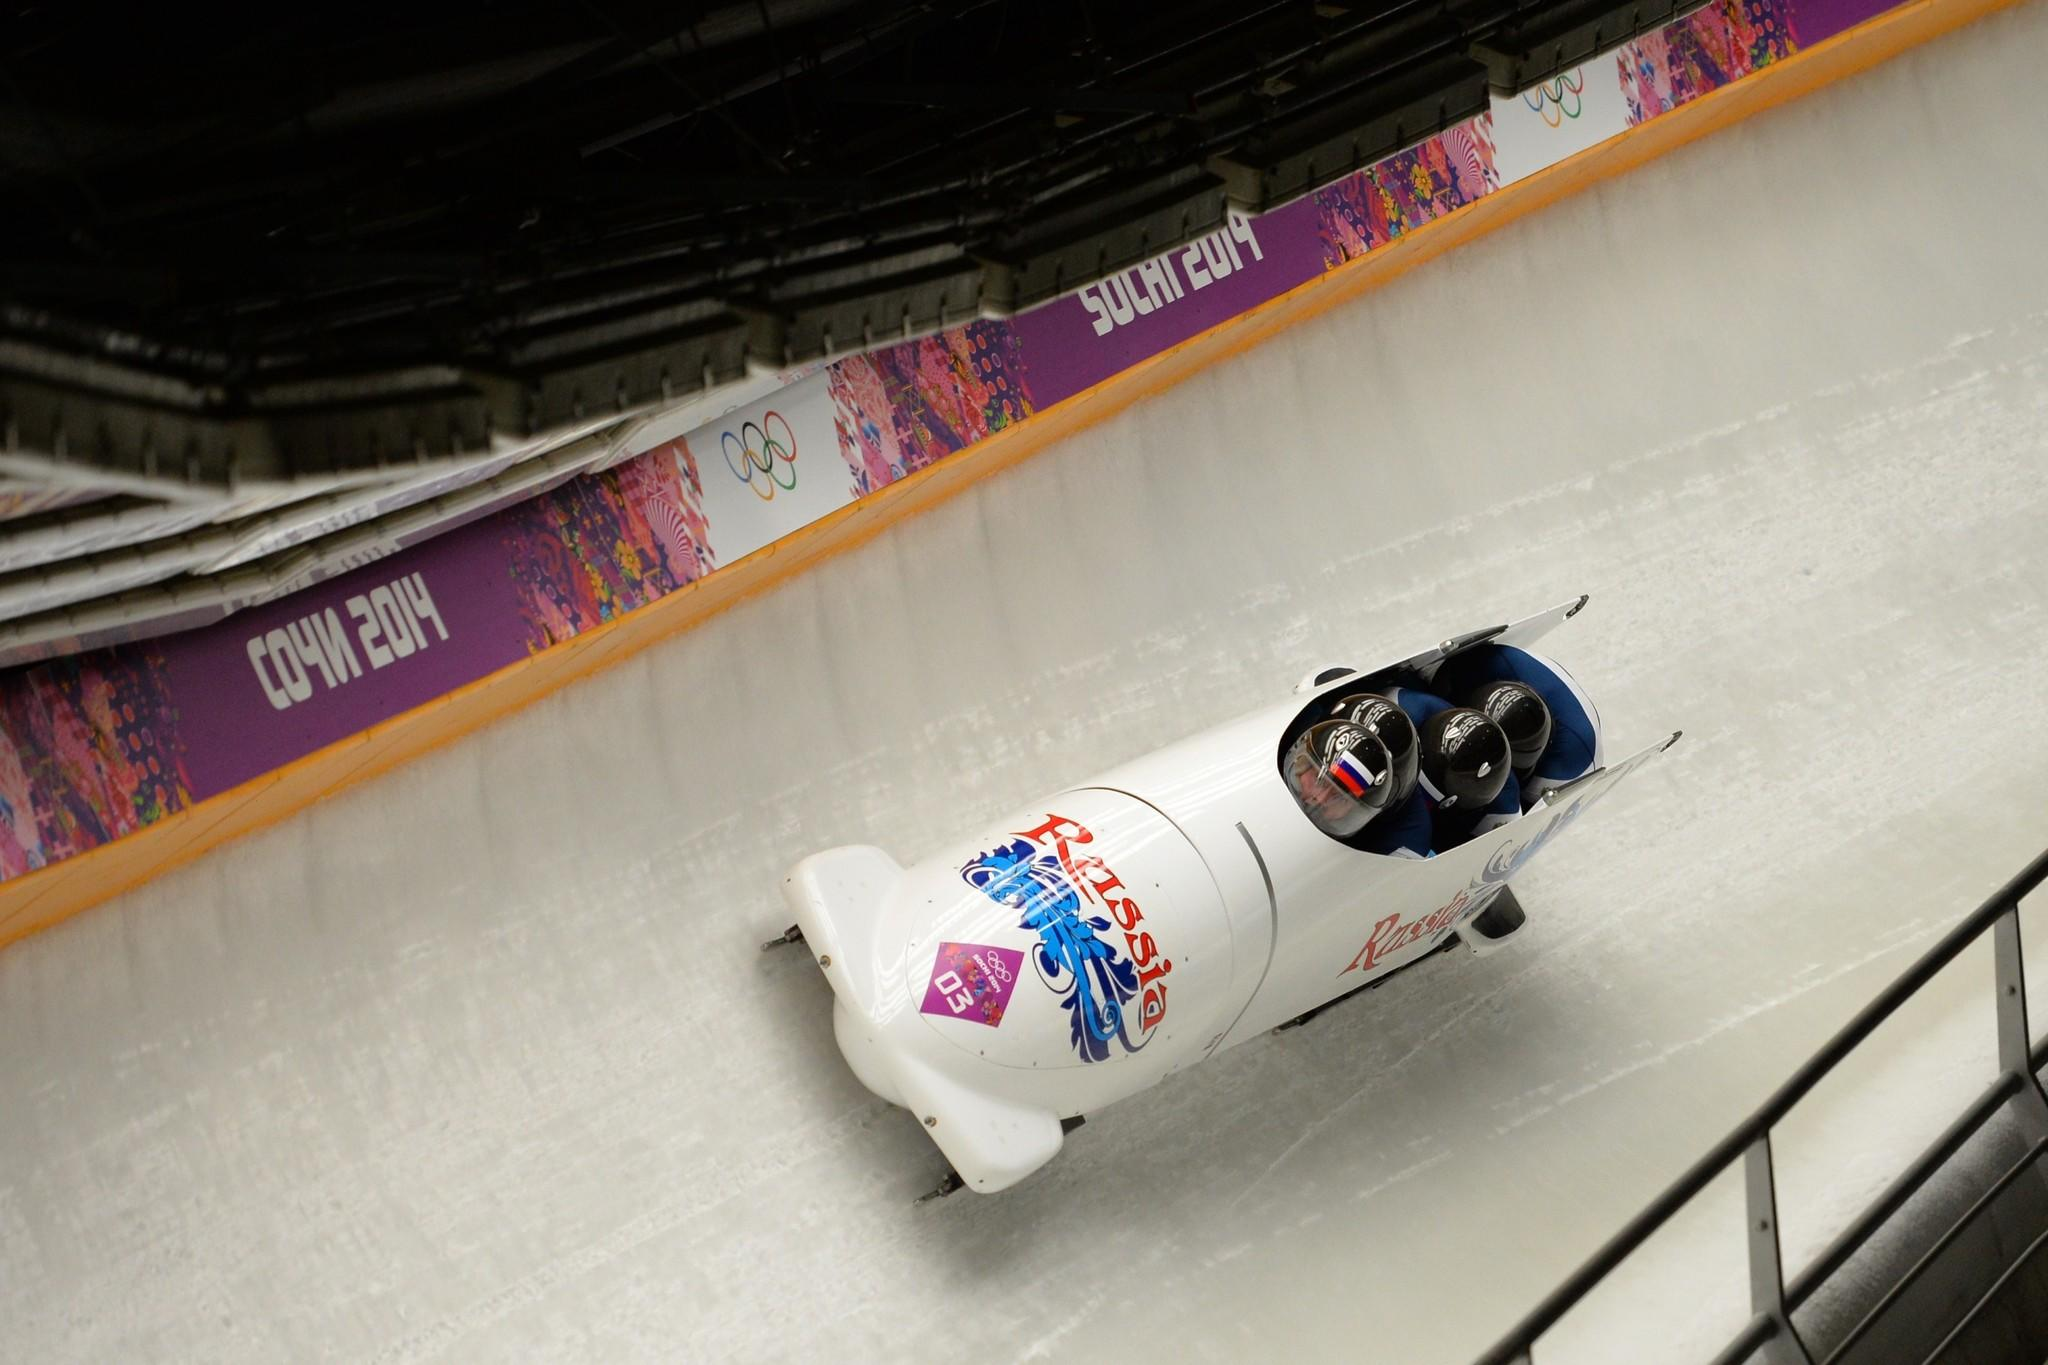 Russia-1 four-man bobsleigh, pilot Alexander Zubkov, pushman Alexey Negodaylo, pushman Dmitry Trunenkov and brakeman Alexey Voevoda compete in the Bobsleigh Four-man Heat 2 at the Sanki Sliding Center during the Sochi Winter Olympics on February 22, 2014.